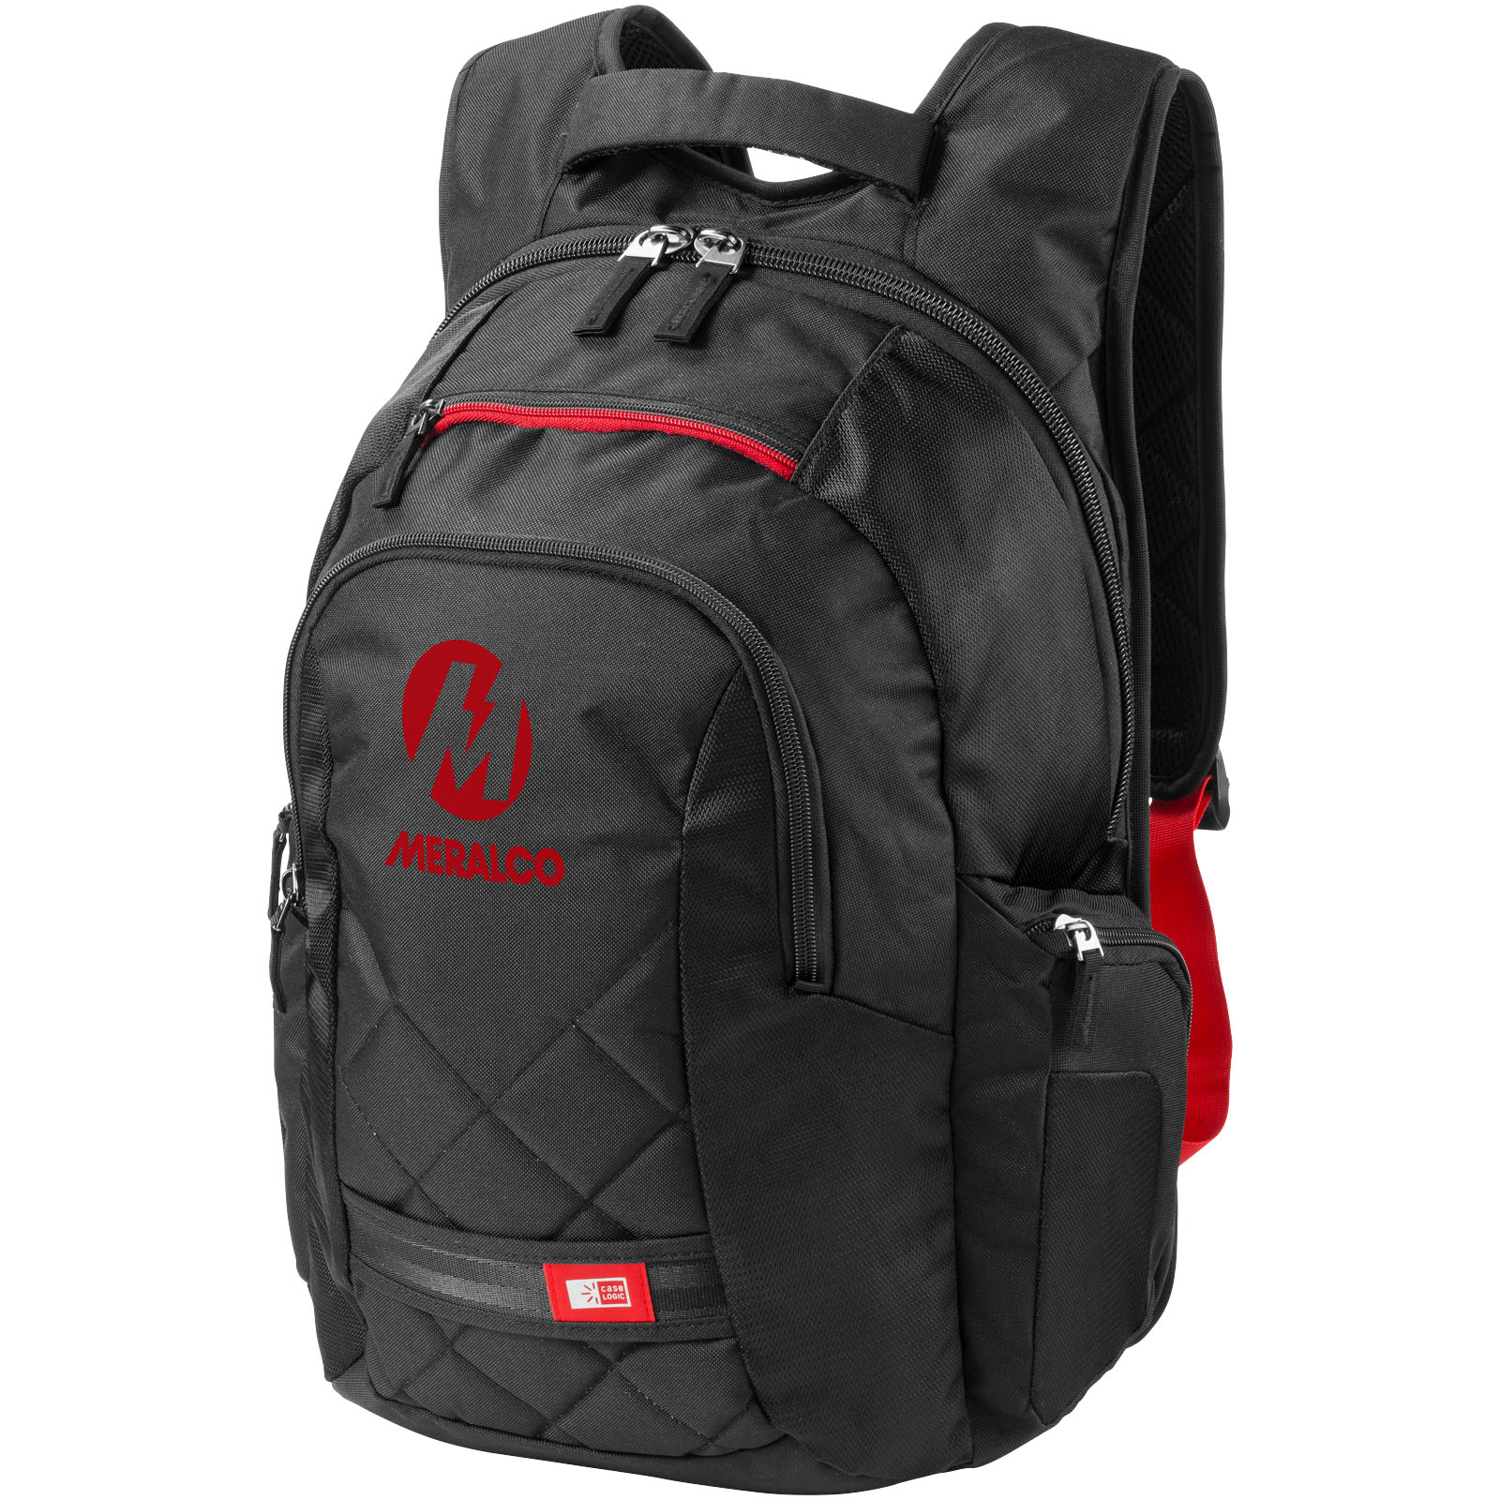 "Felton 16"" Laptop Backpack"